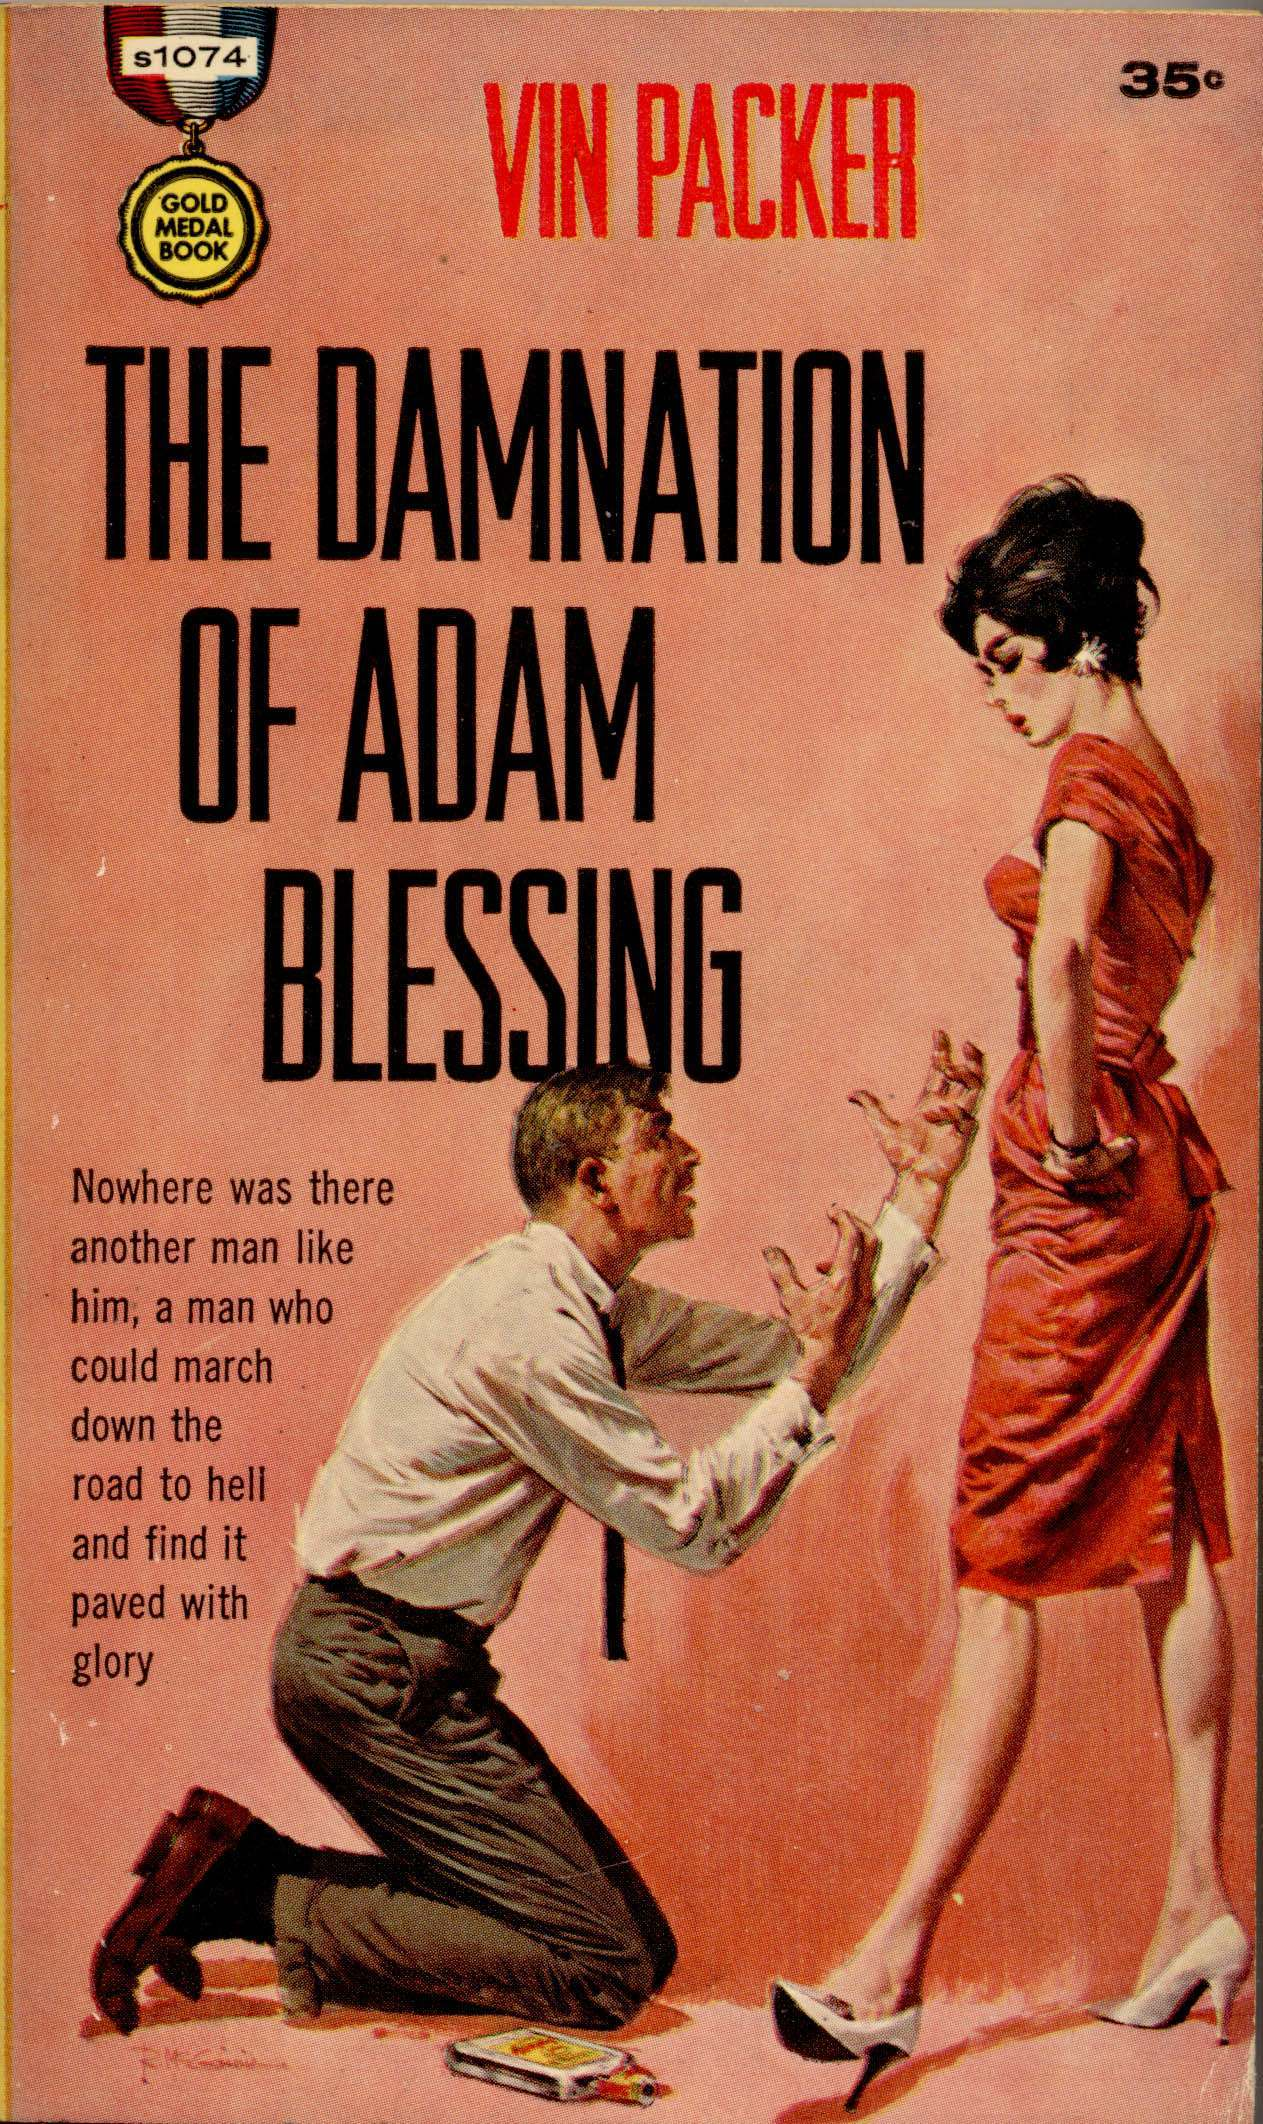 The Damnation of Adam Blessing by Vin Packer, 1961.